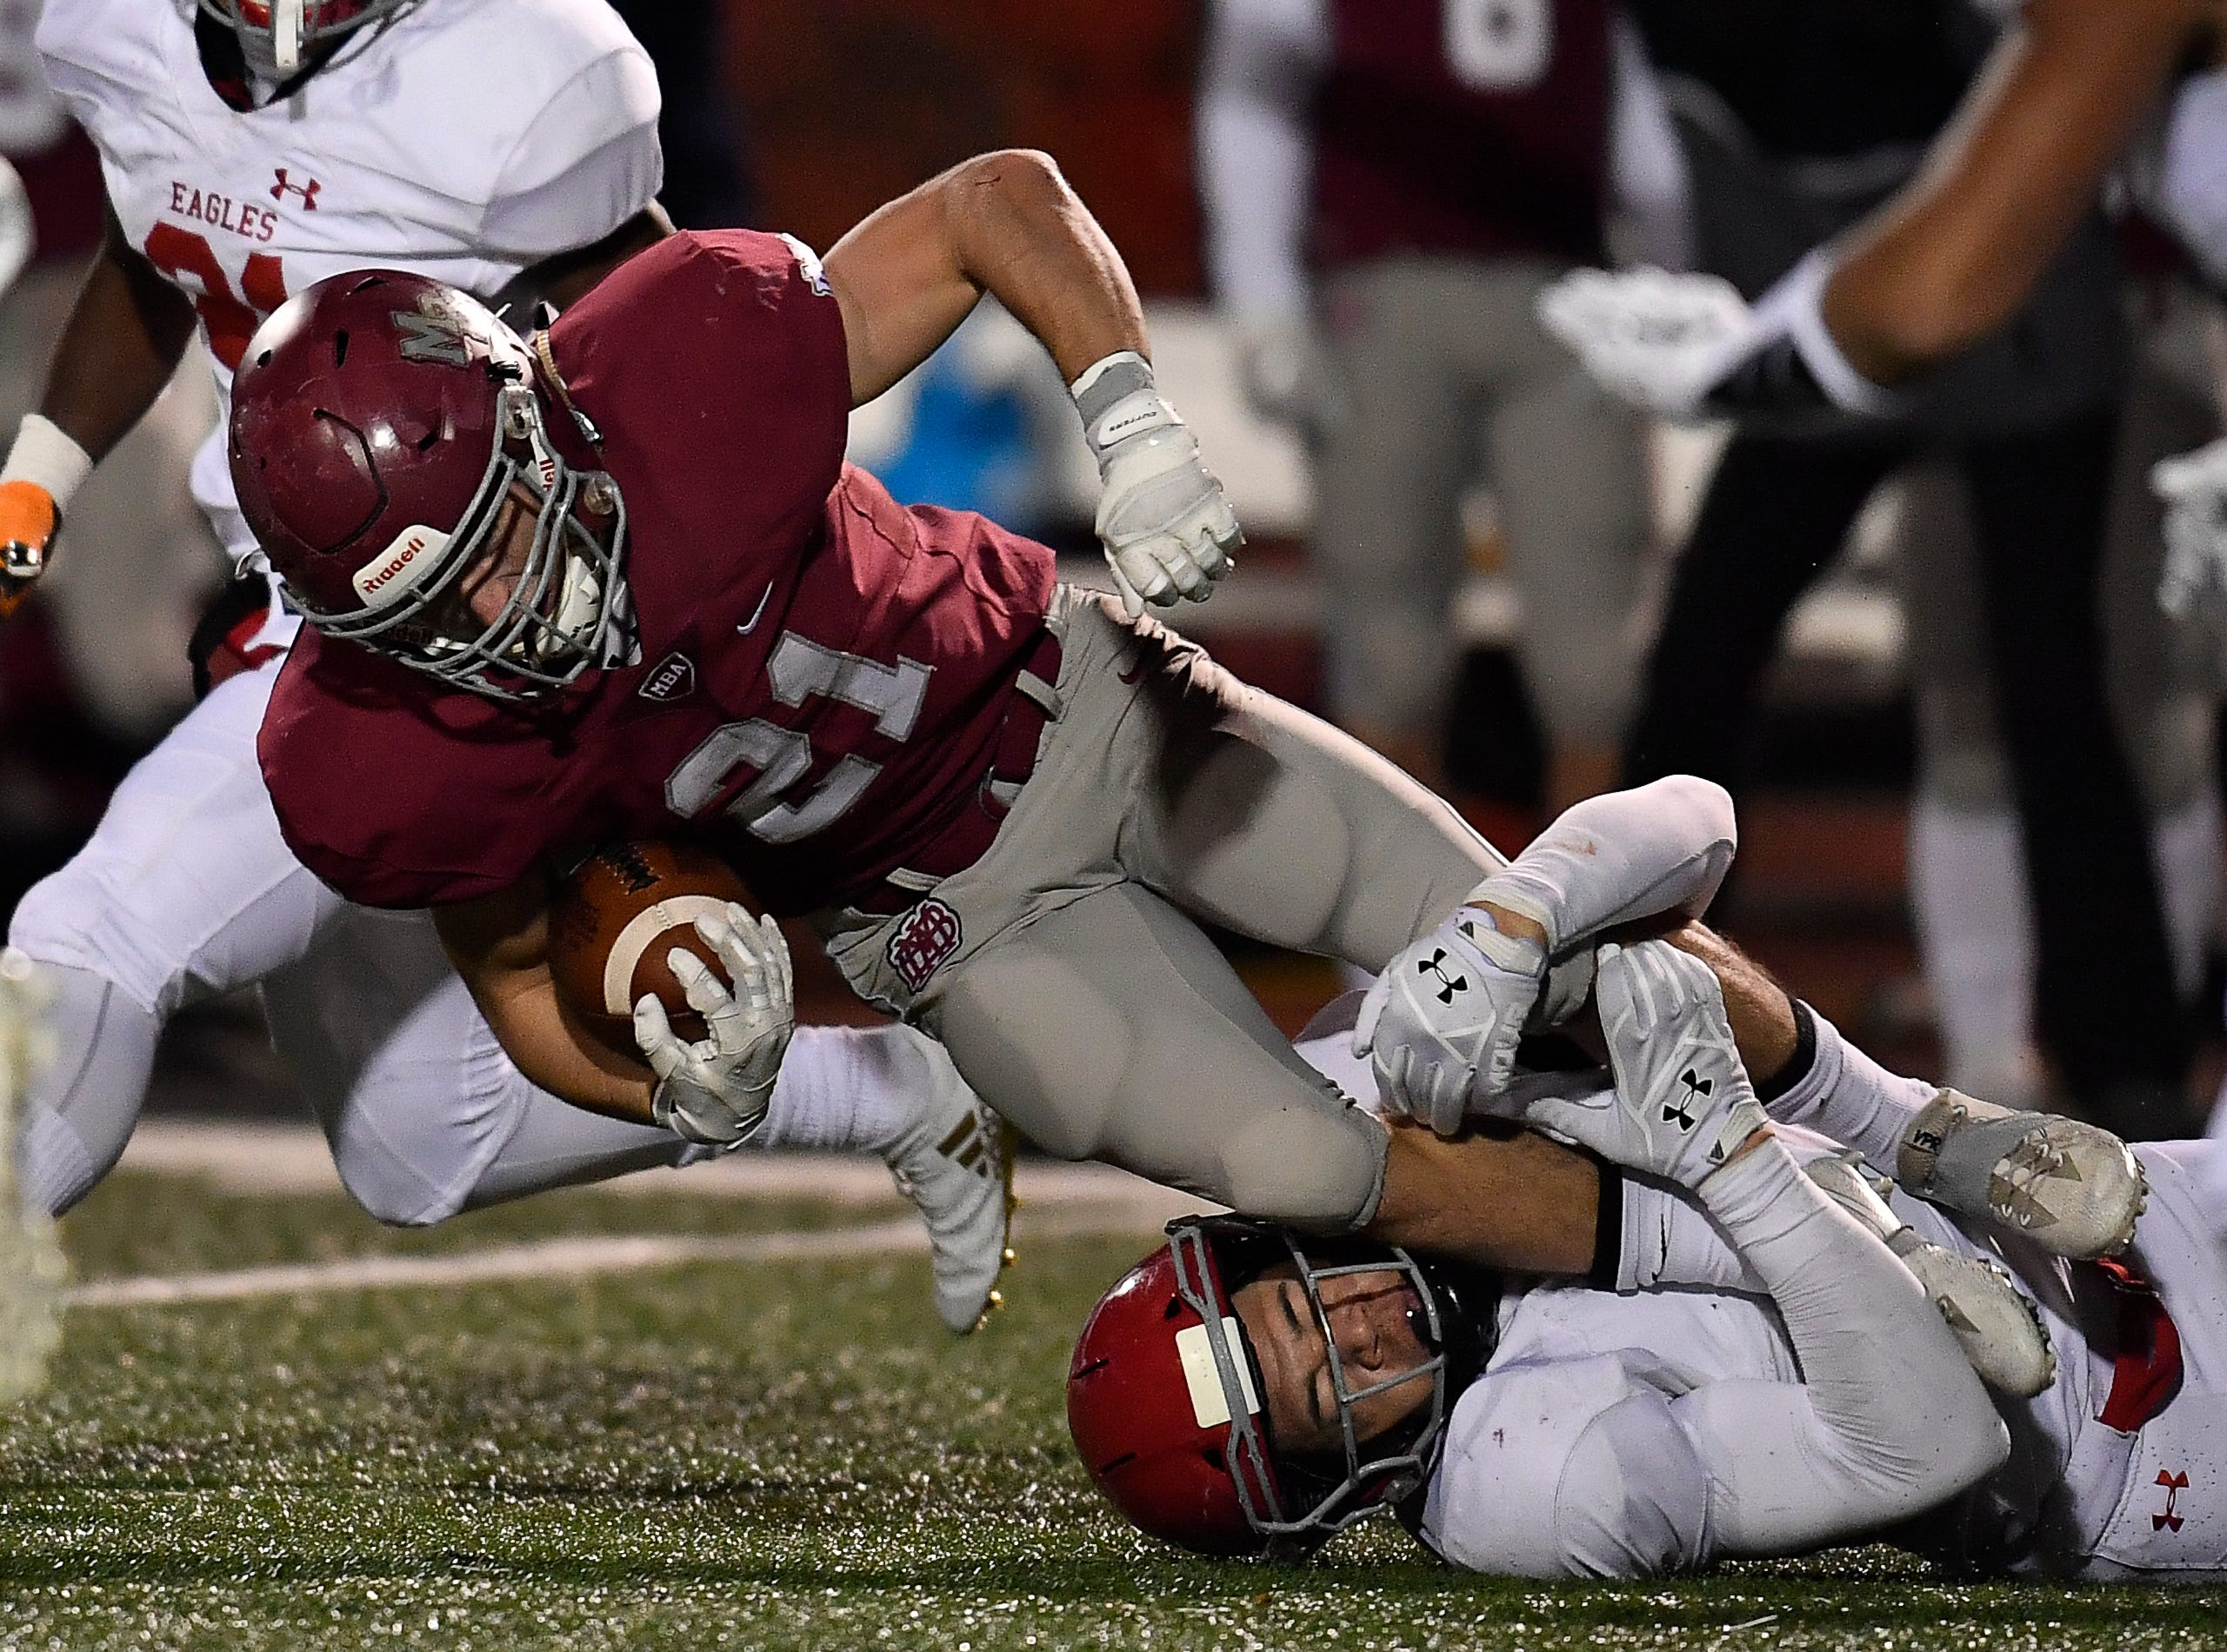 MBA running back Sam Dugan (21) is pulled down by a Brentwood Academy defender during the second quarter of their 2018 Division II Class AAA State Football Playoff game at Montgomery Bell Academy Friday, Nov. 16, 2018, in Nashville, Tenn.